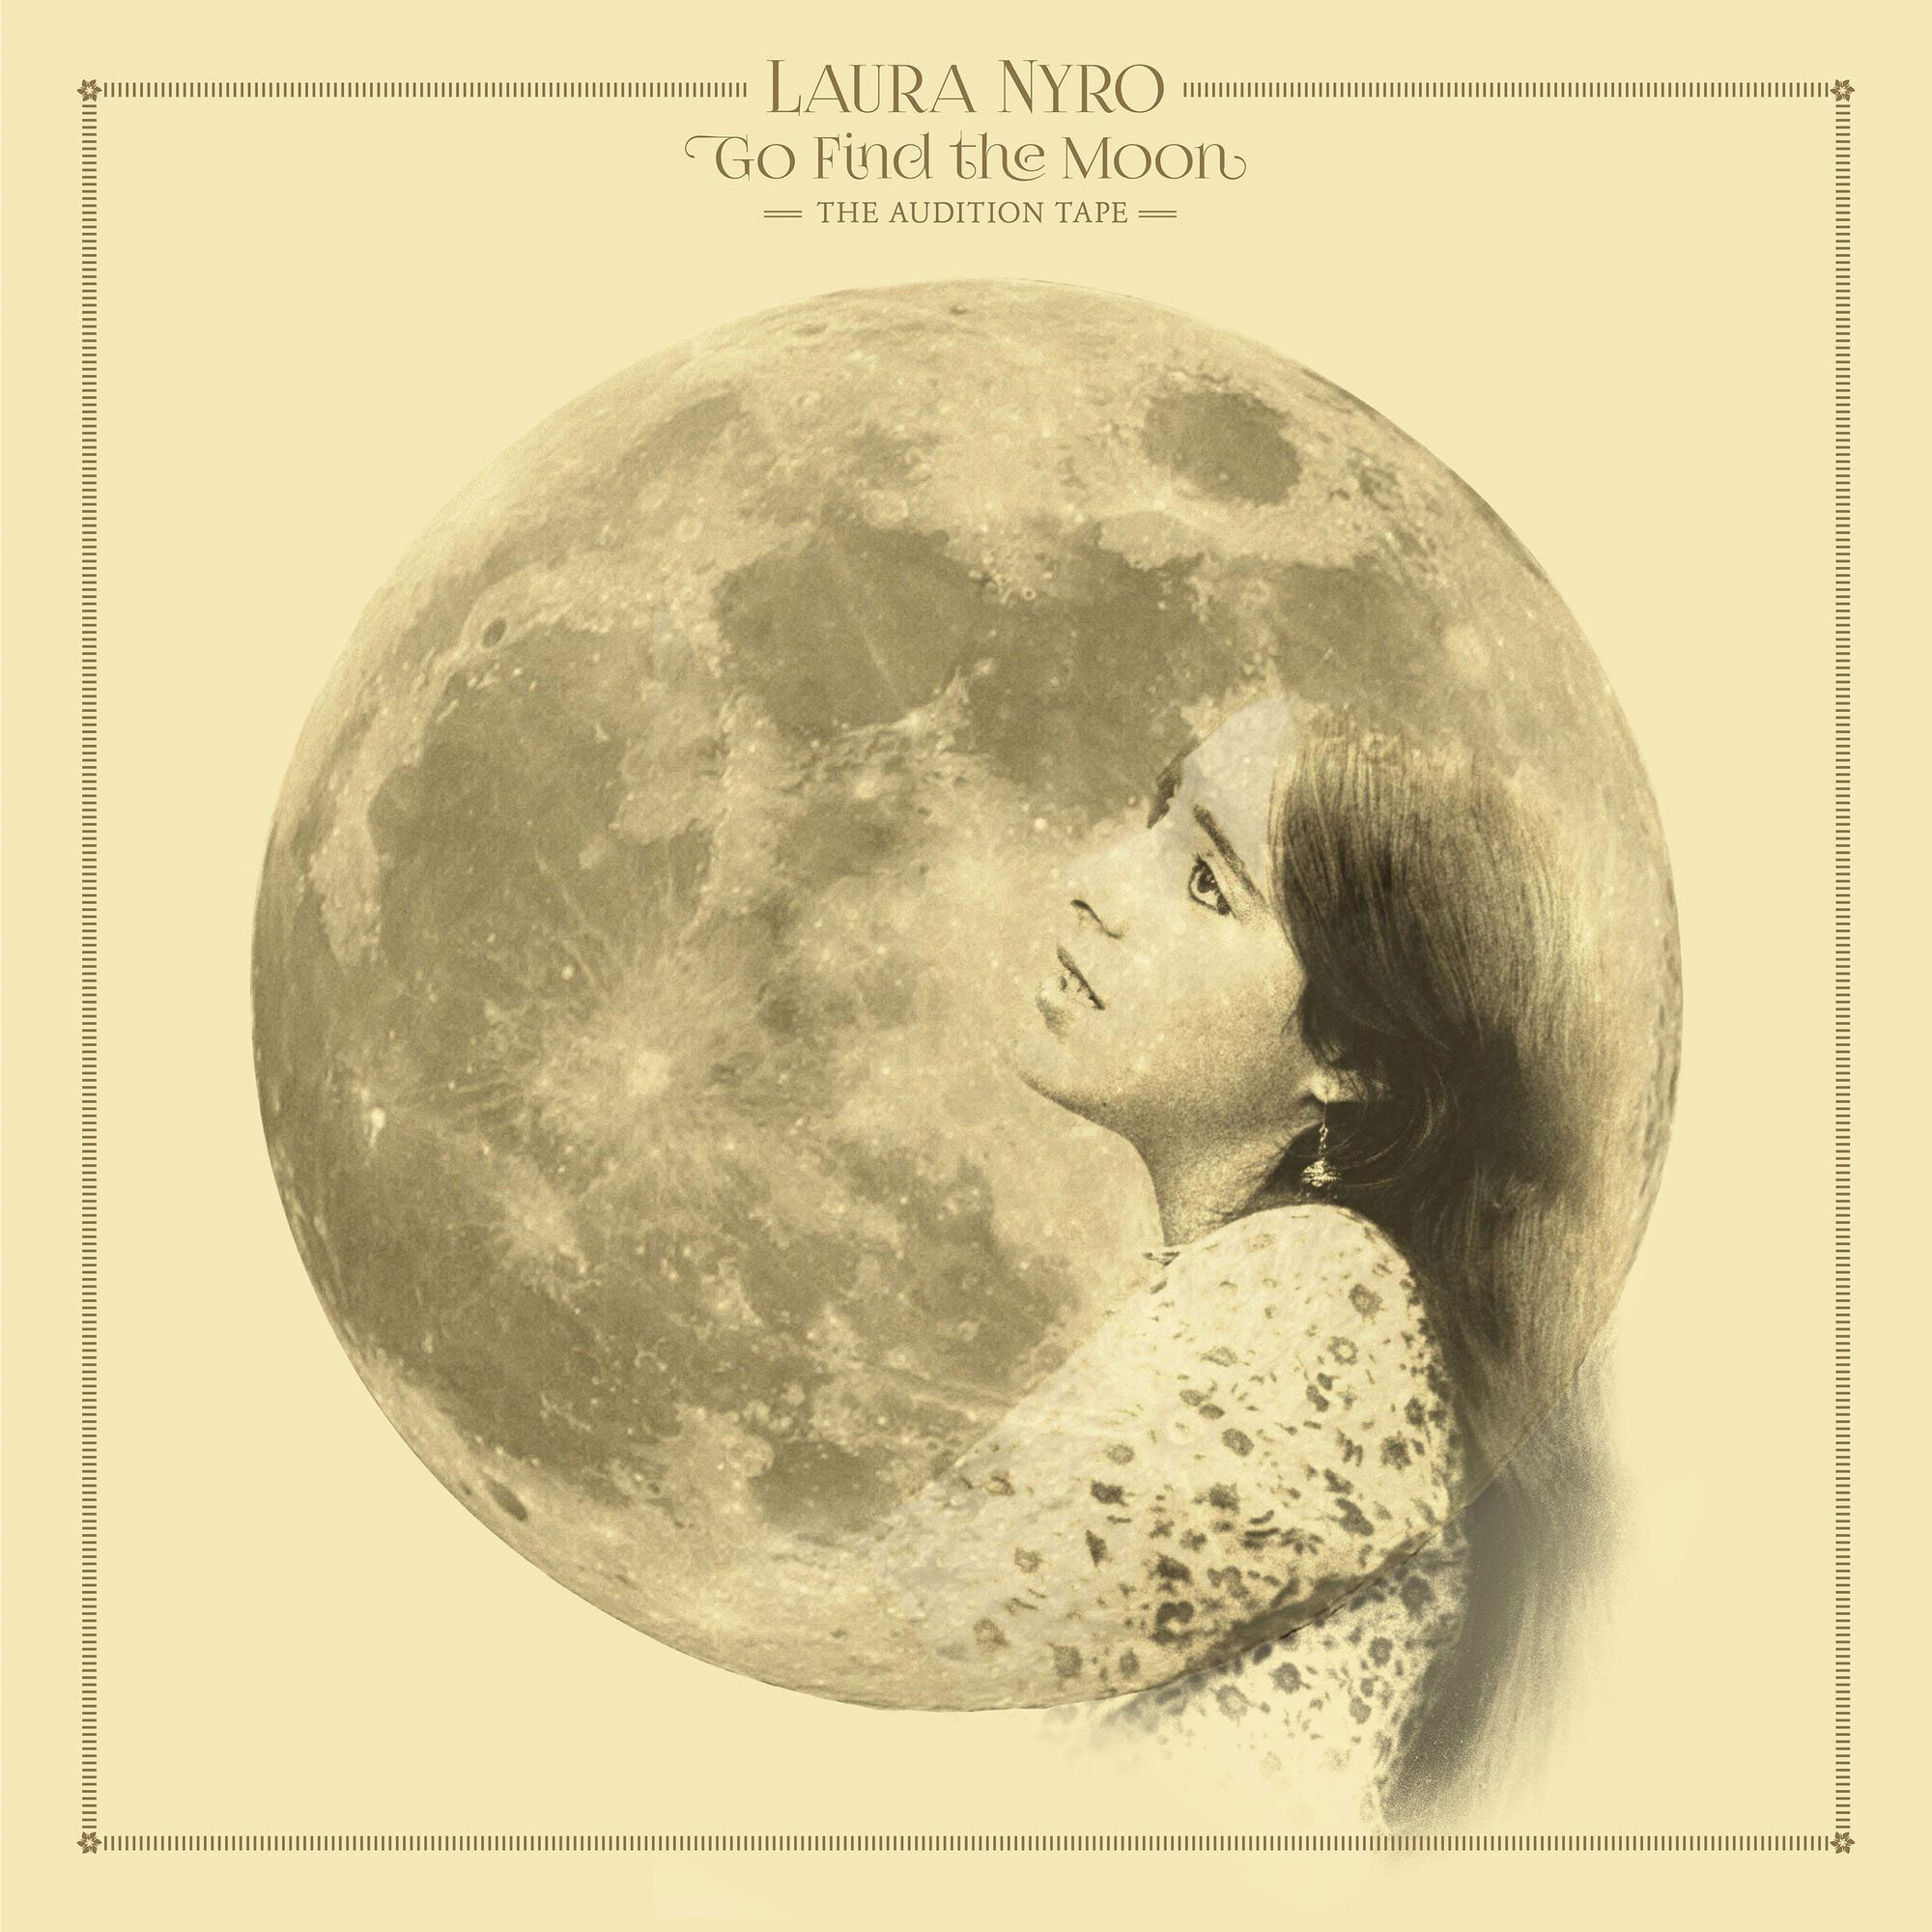 Laura Nyro Go Find The Moon: The Audition Tape 45rpm LP